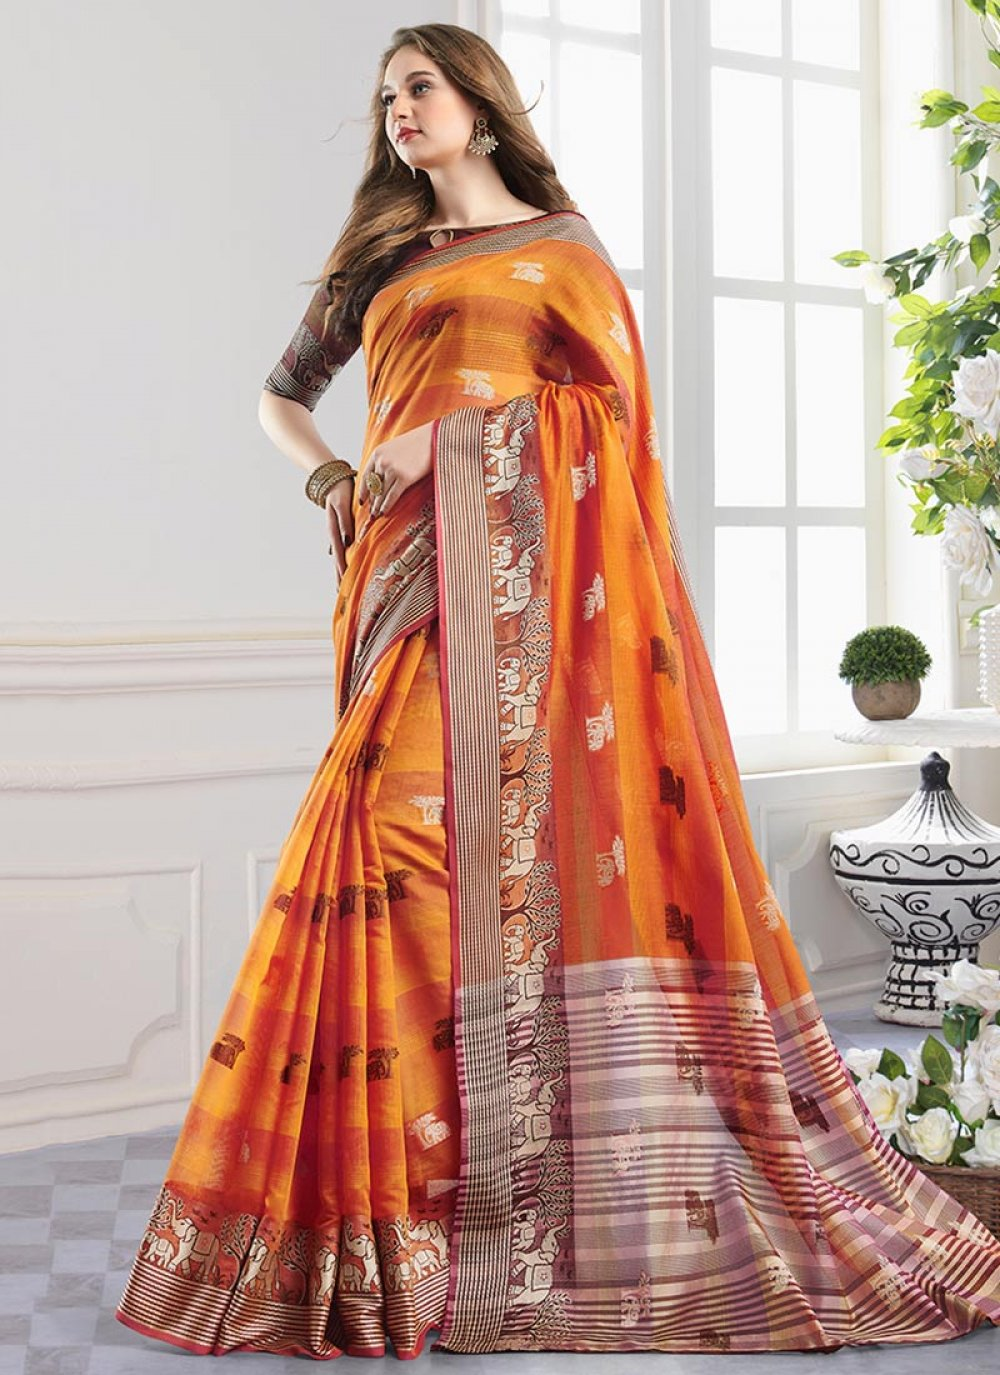 Print Handloom Cotton Orange Shaded Saree